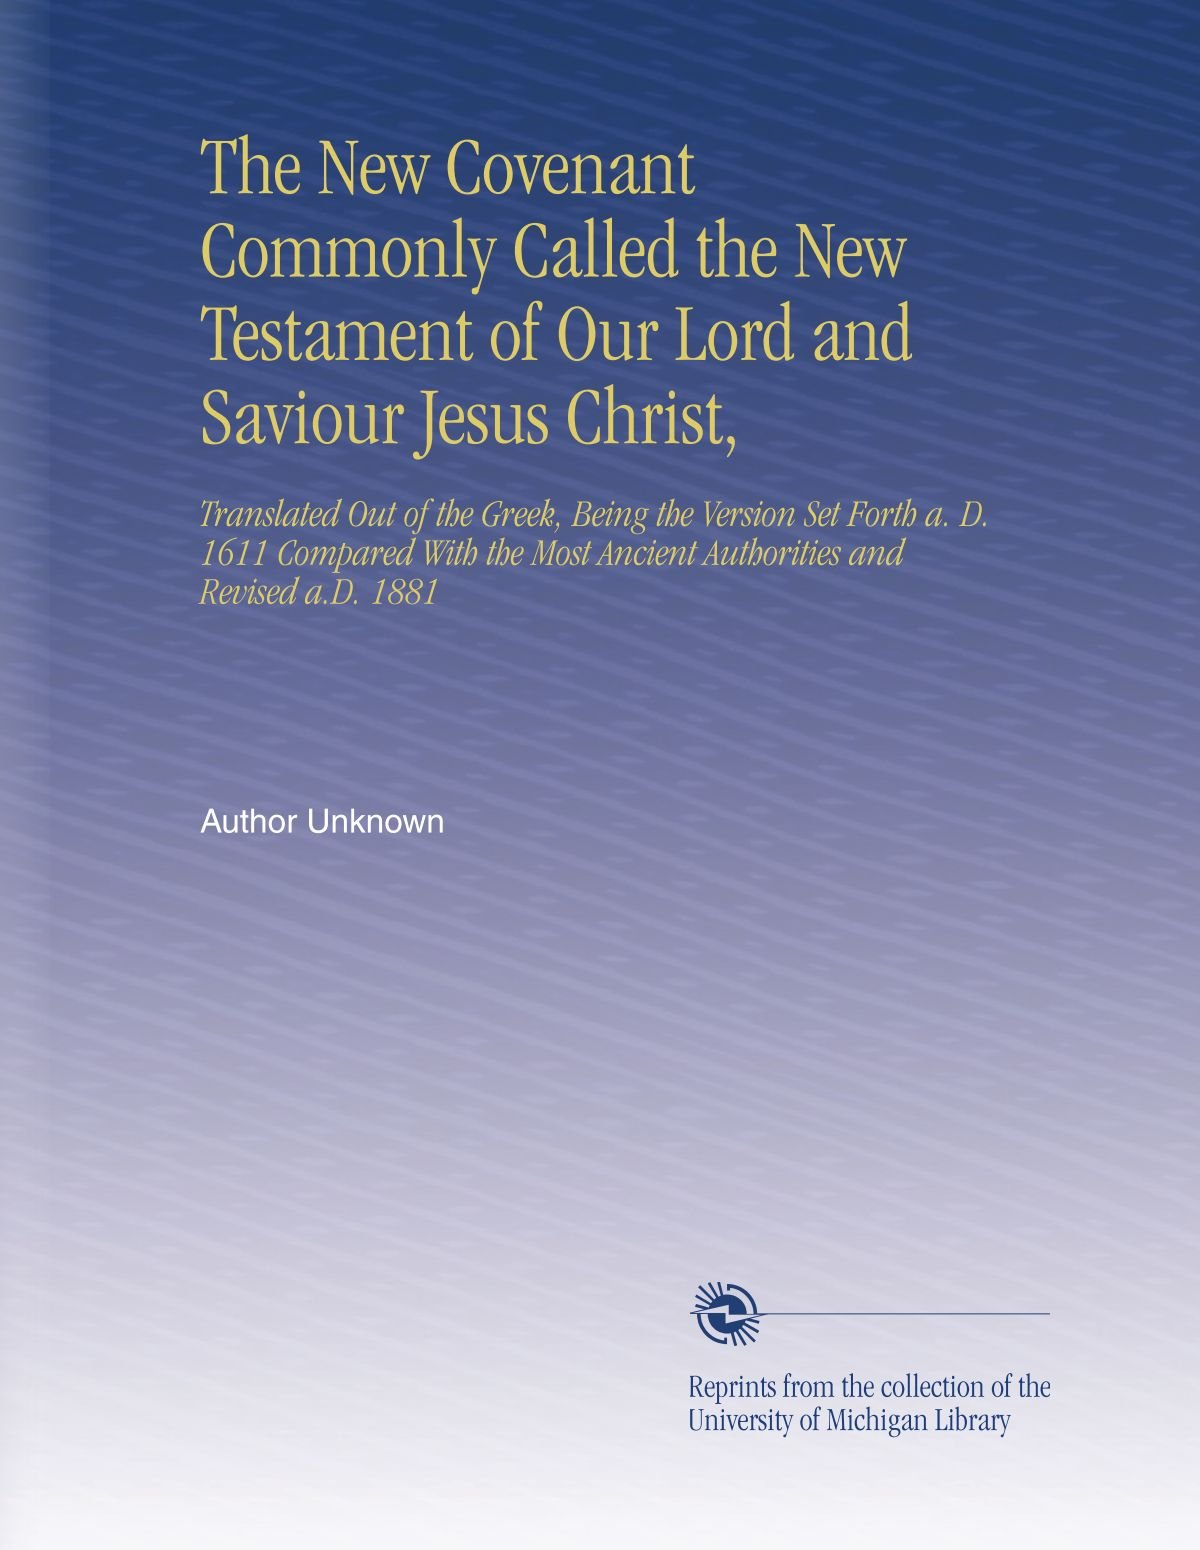 The New Covenant Commonly Called the New Testament of Our Lord and Saviour Jesus Christ,: Translated Out of the Greek, Being the Version Set Forth a. ... Ancient Authorities and Revised a.D. 1881 ebook